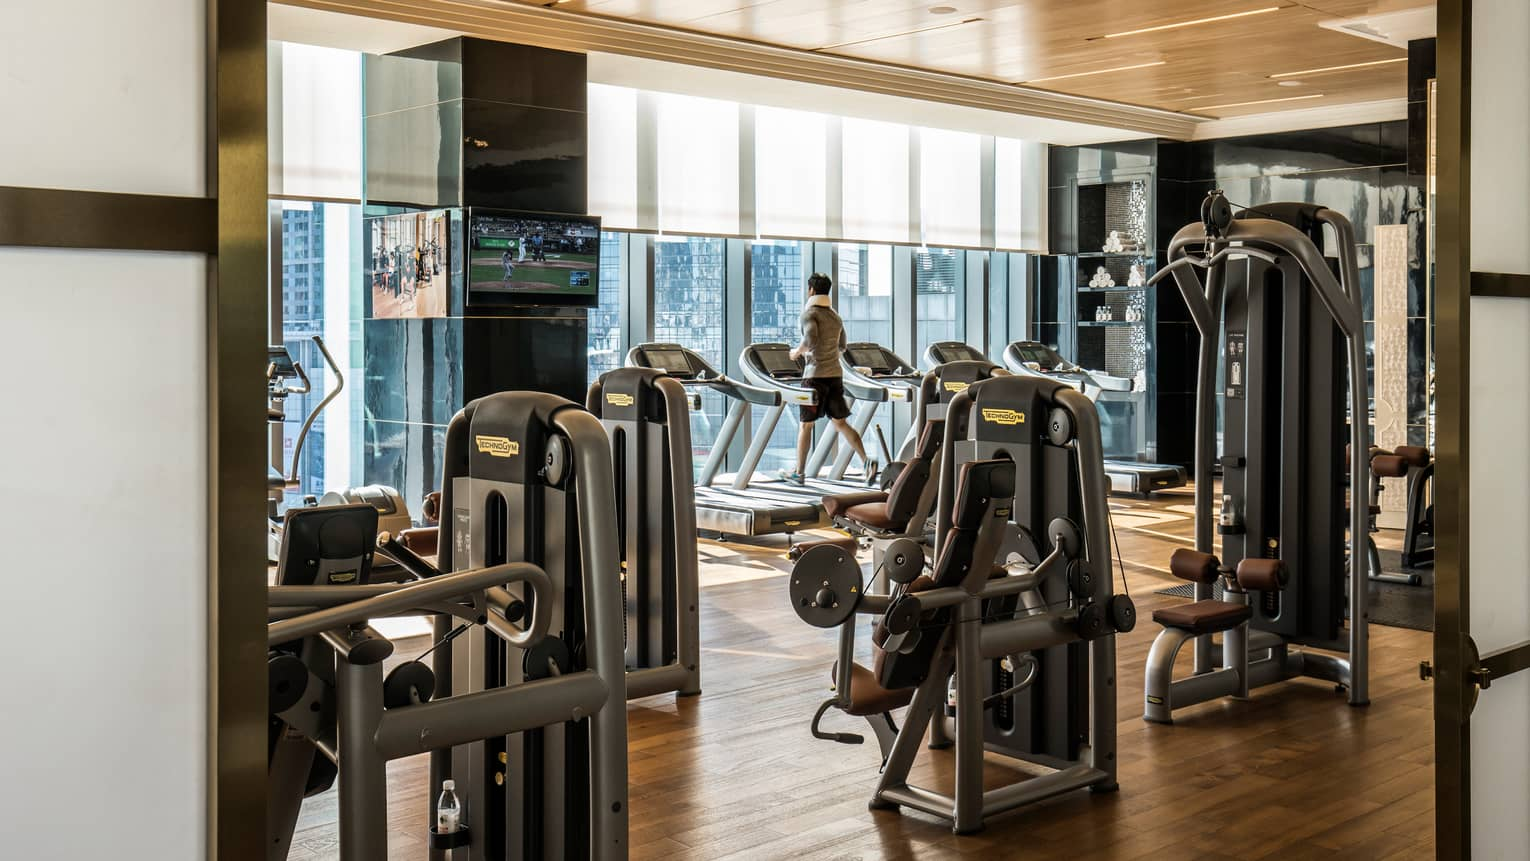 Man runs on treadmill in Fitness Centre by cardio machines, window